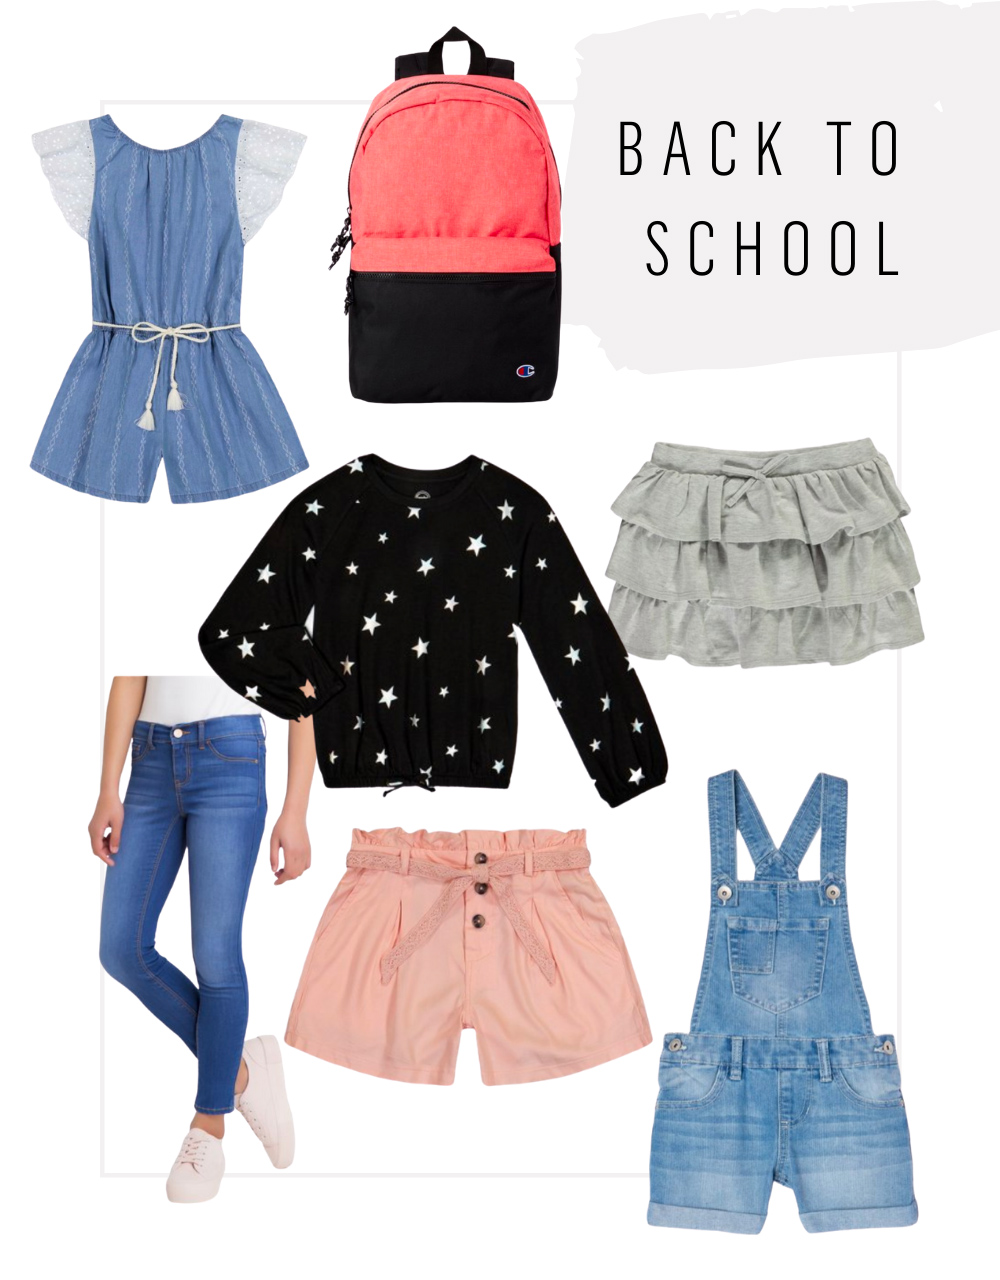 kailee wright walmart back to school clothes